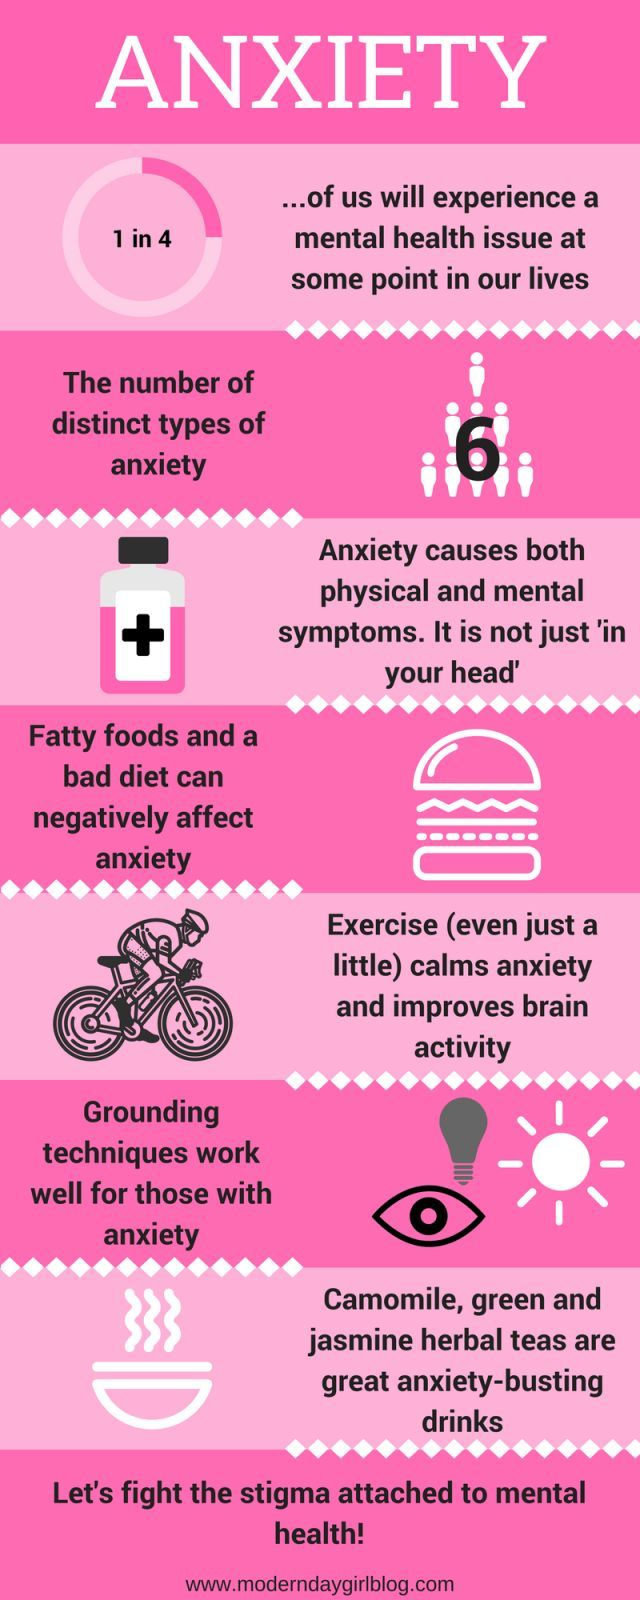 Here's an infographic which shows visually how anxiety affects us all. It includes simple tips and ways to deal with anxiety. Let's share!